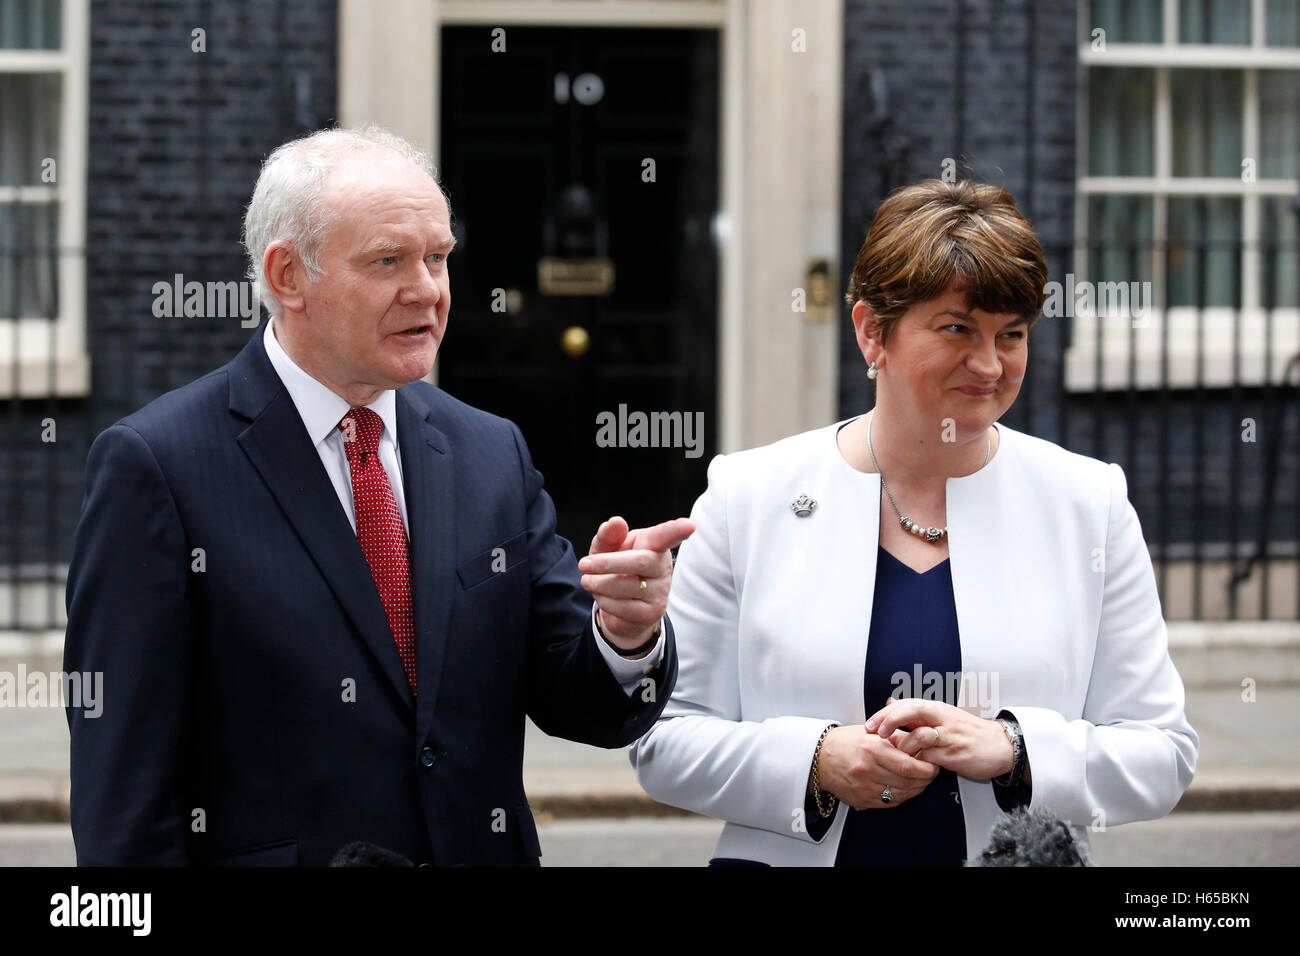 London, UK. 24th Oct, 2016. Deputy First Minister of Northern Ireland Martin McGuinness of Sinn Fein and First Minister - Stock Image